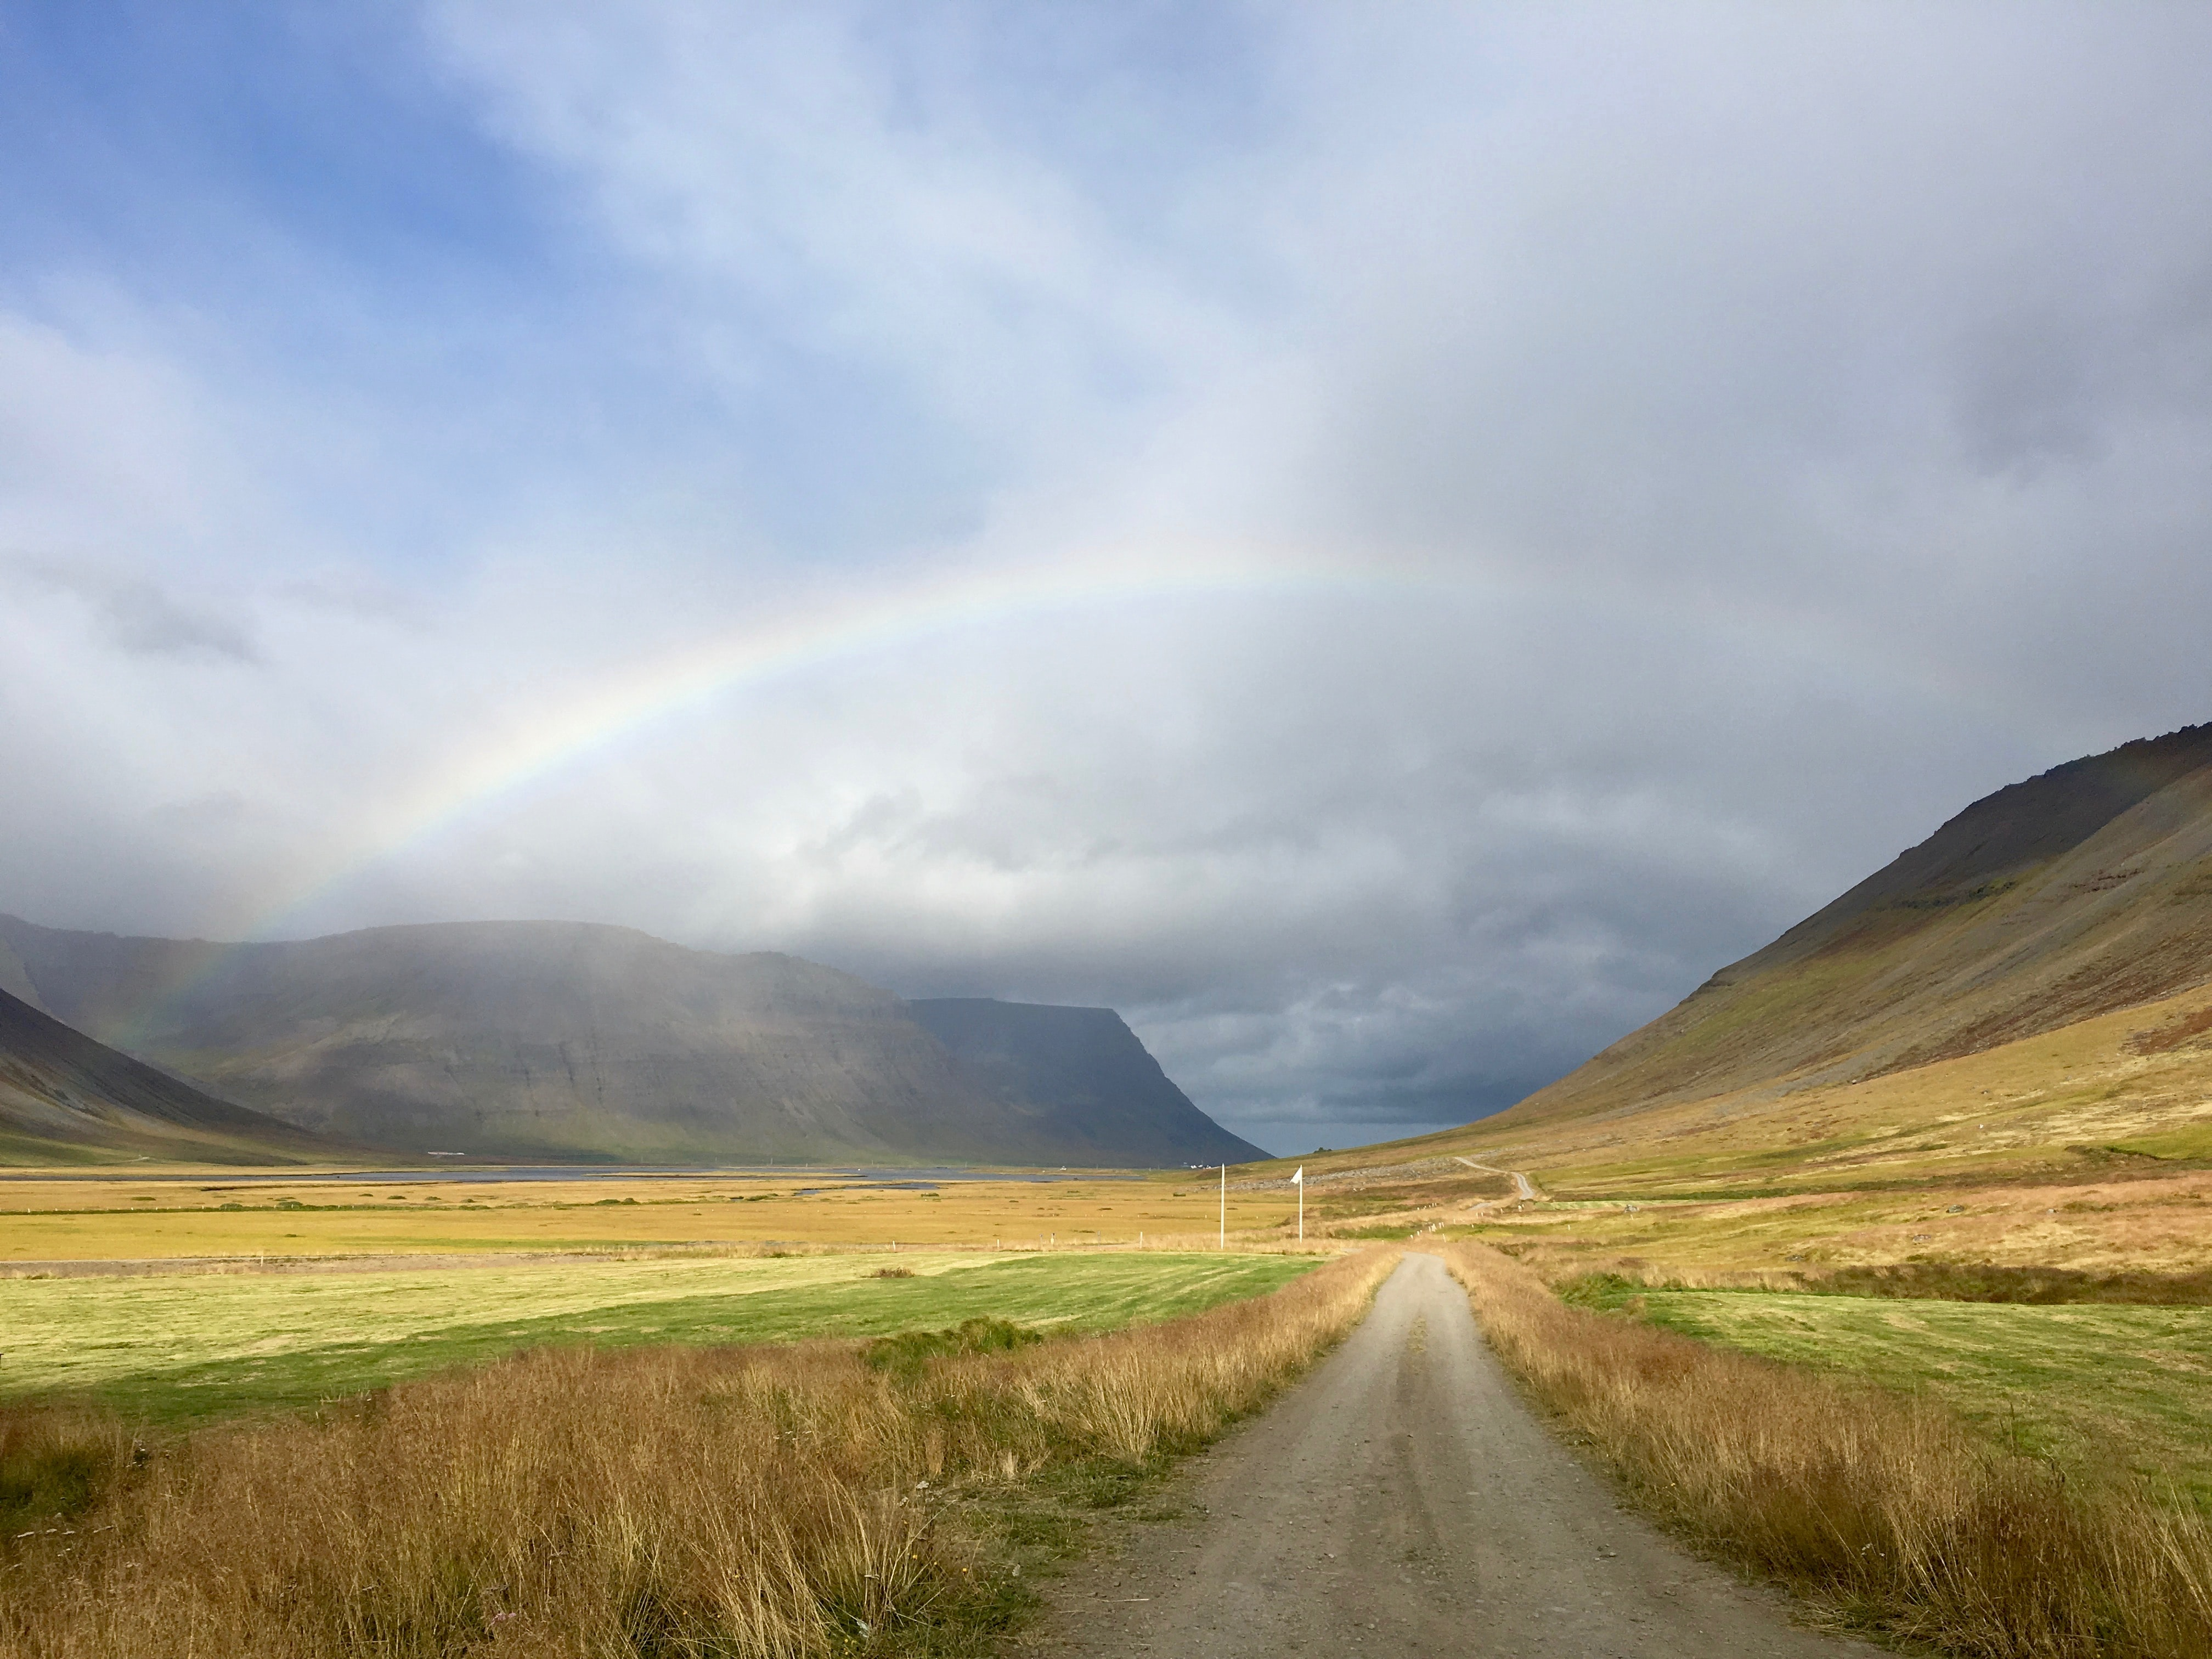 dirt path between brown and green field leading to a rainbow under blue and white cloudy sky